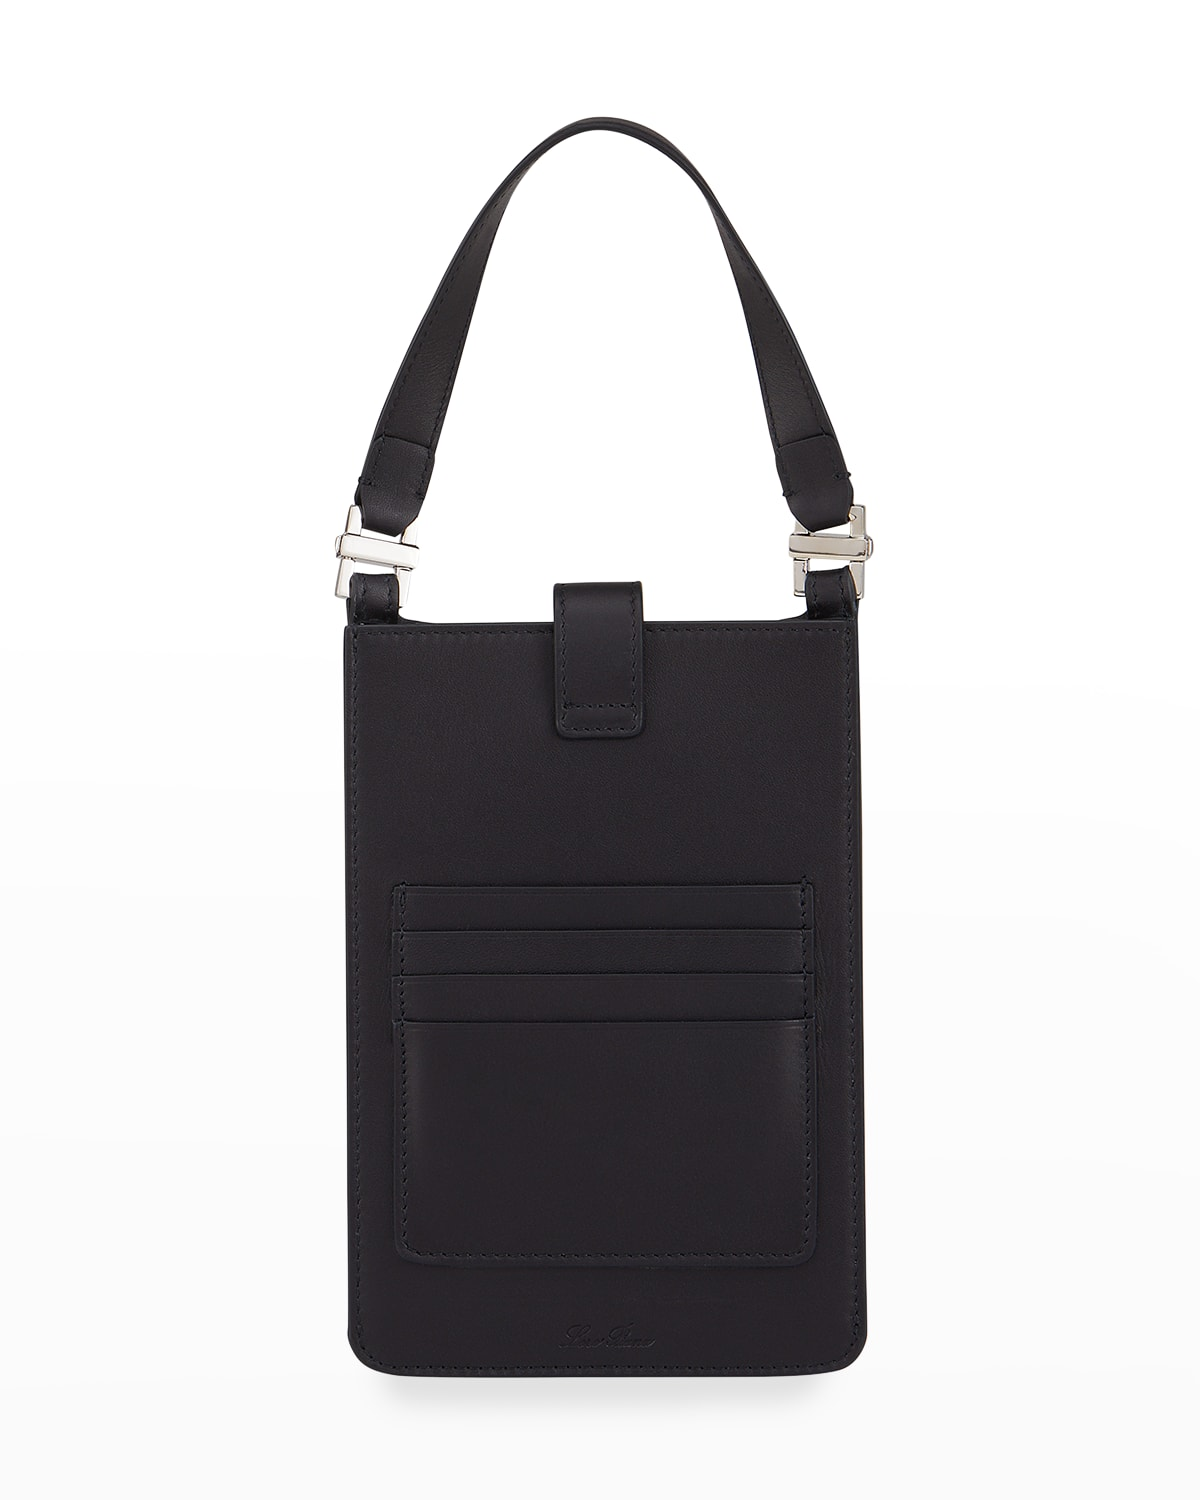 Forget Me Not Leather Crossbody Bag